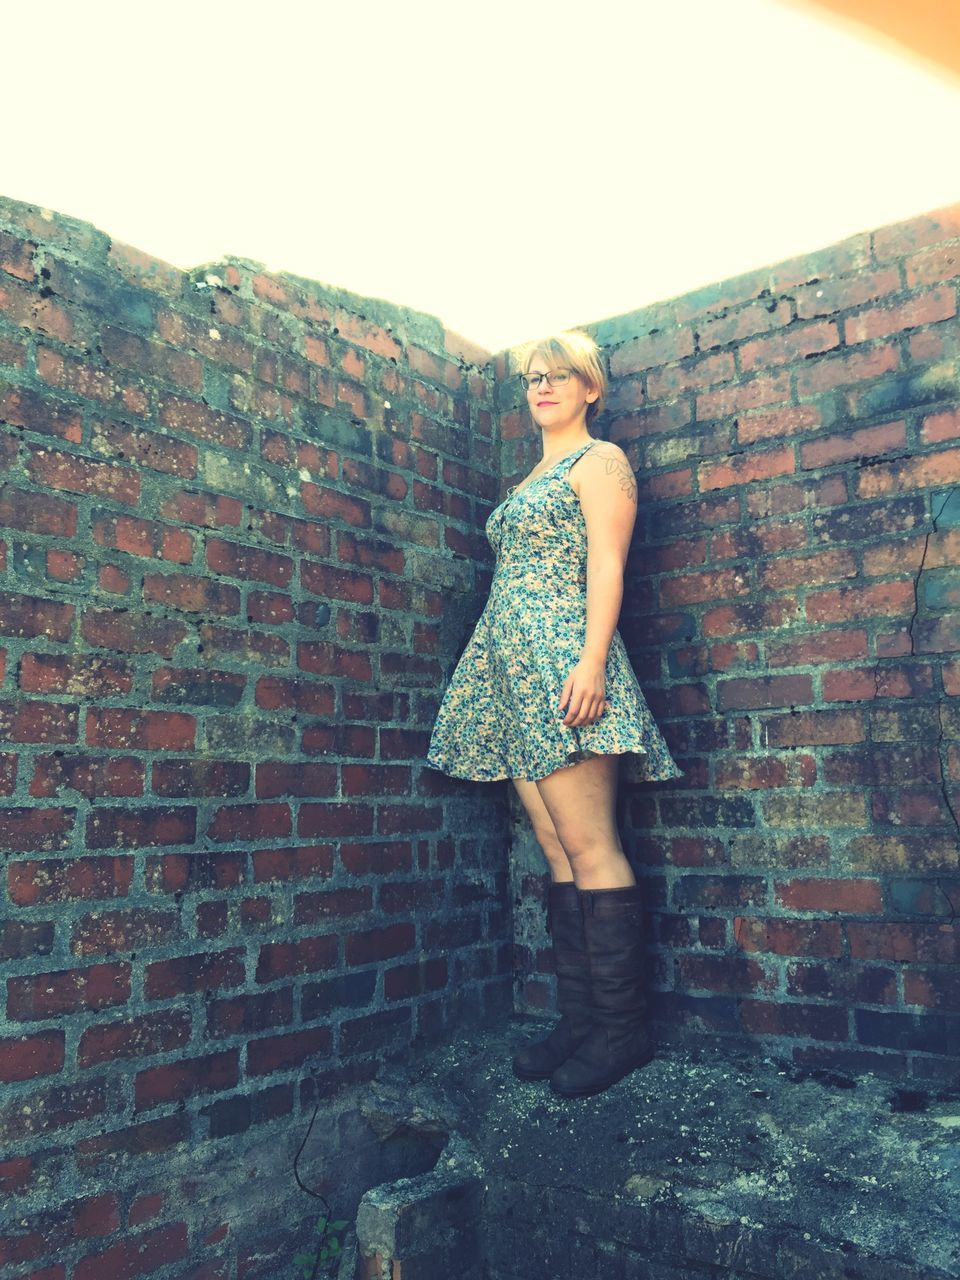 brick wall, standing, young adult, one person, young women, real people, looking at camera, leisure activity, outdoors, portrait, beautiful woman, full length, lifestyles, day, architecture, people